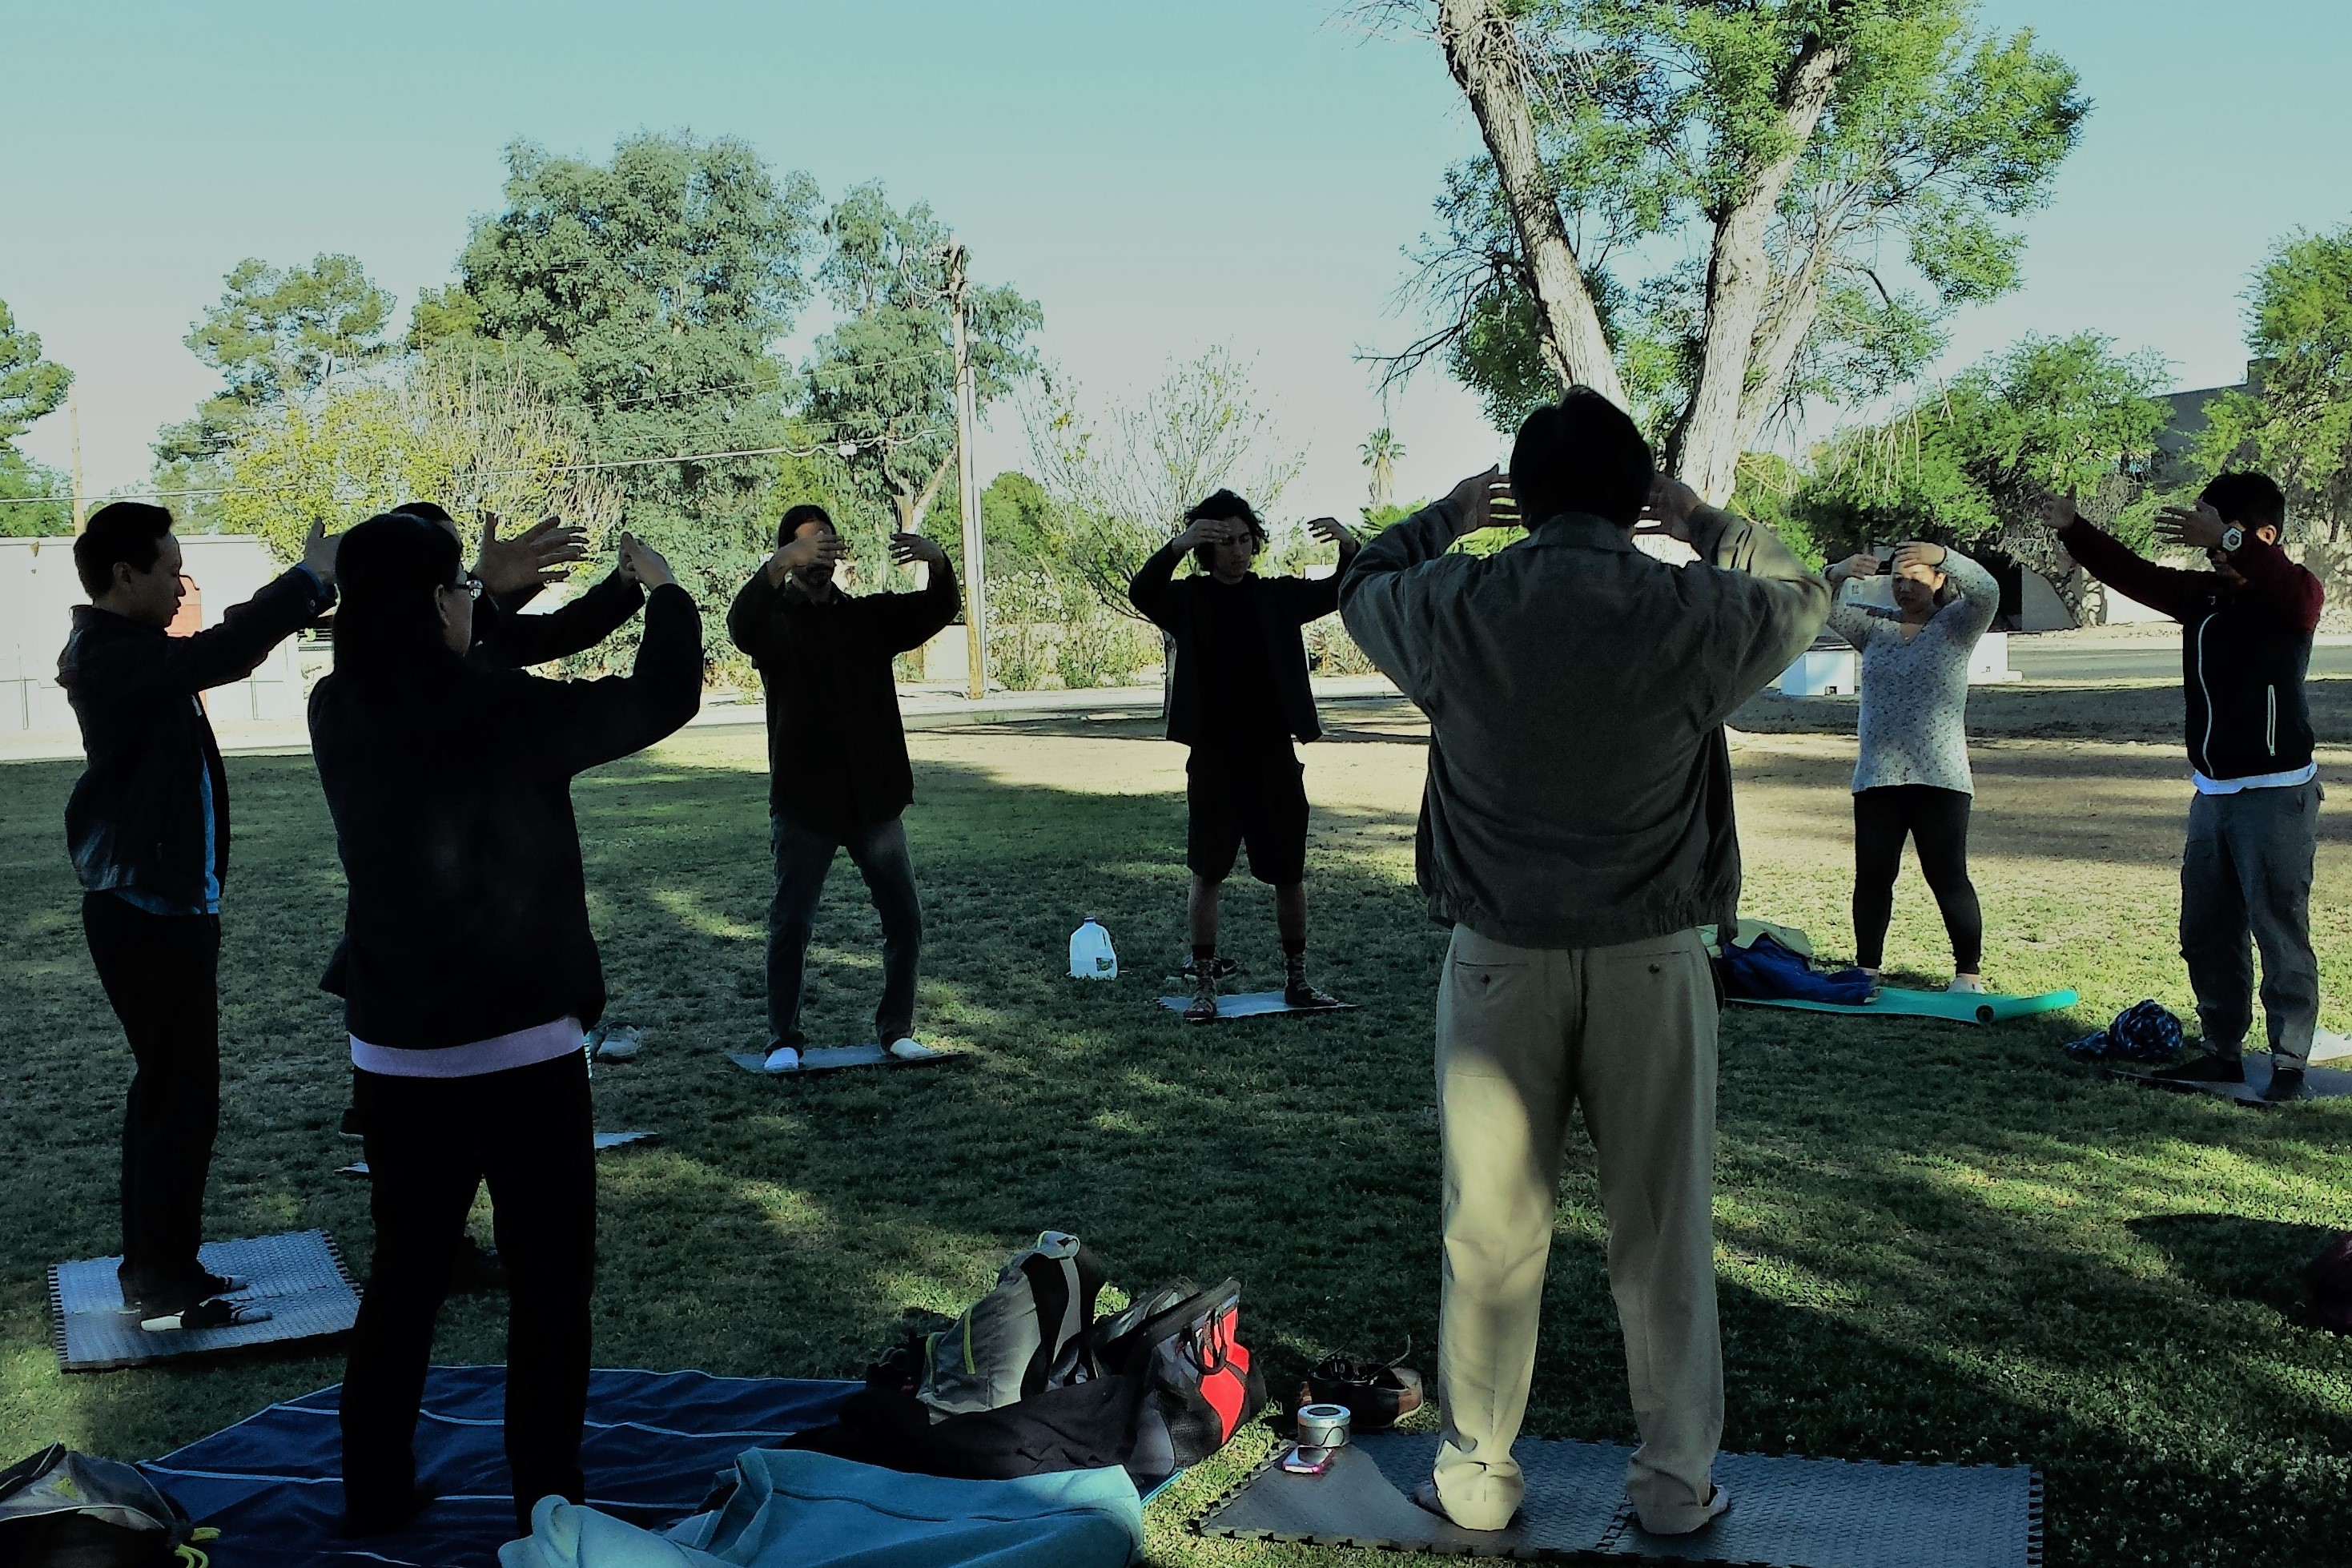 Falun Dafa Exercise 2 at Himmel Park Tucson Arizona 2017-04-30